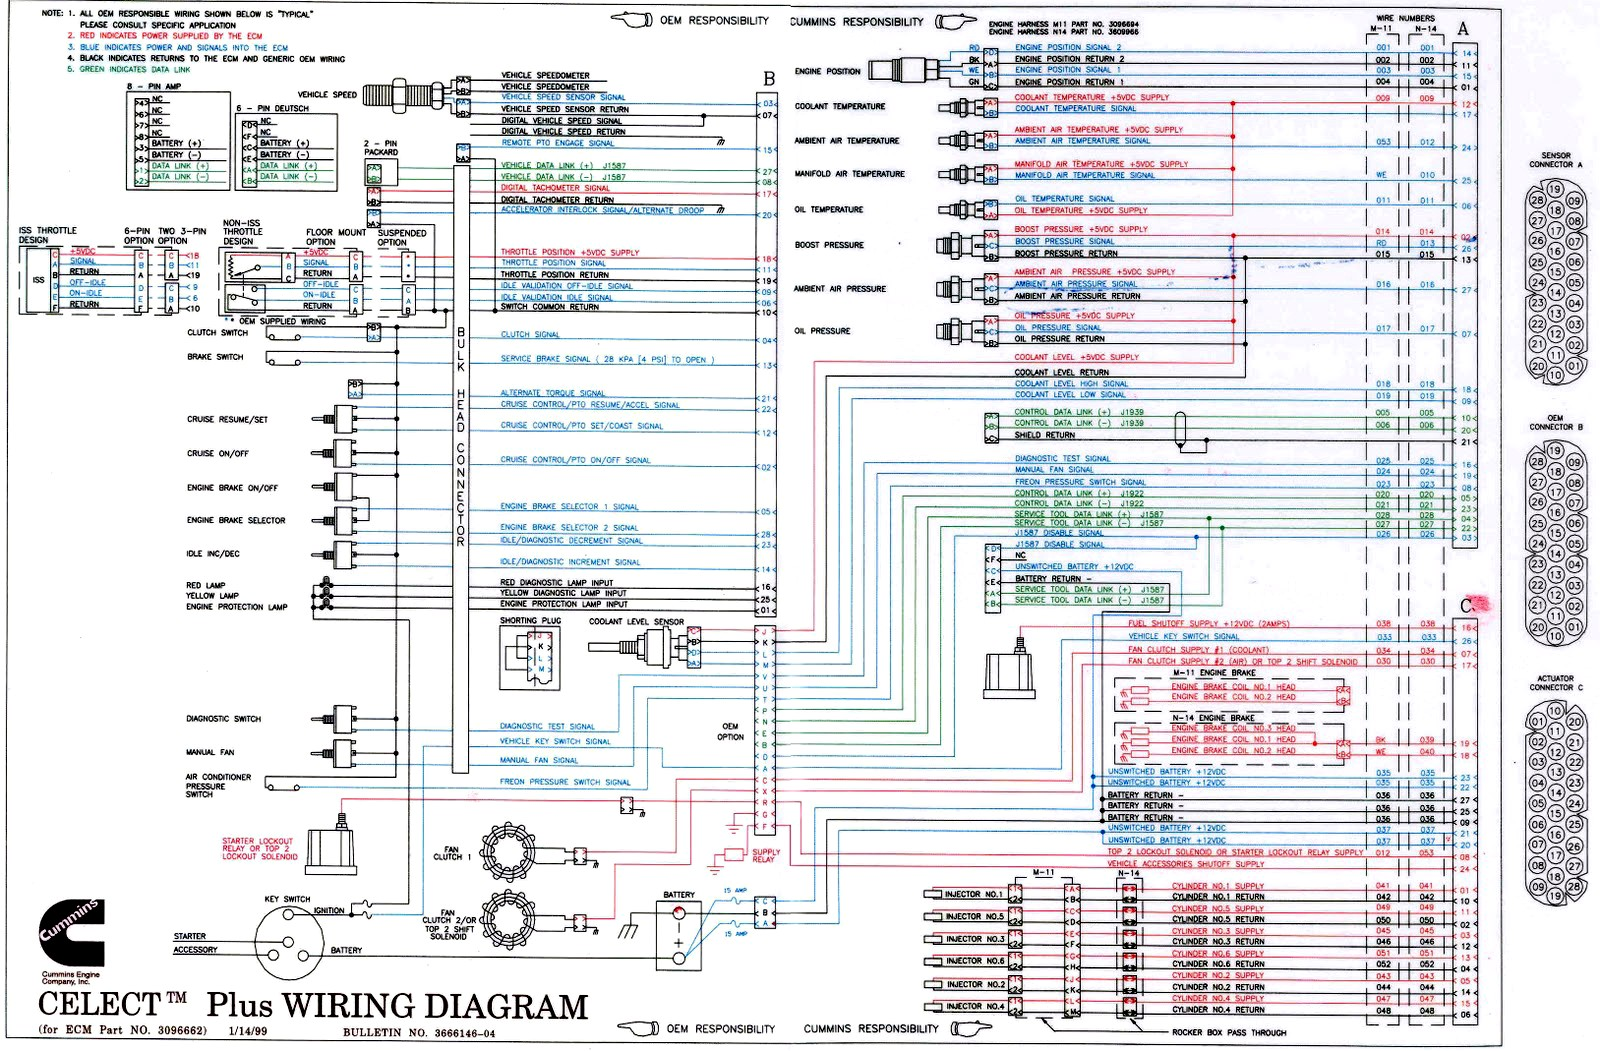 Celect+Plus+Wiring+Diagram+Cummins n14 celect wiring diagram n14 cummins engine wiring diagram  at gsmportal.co